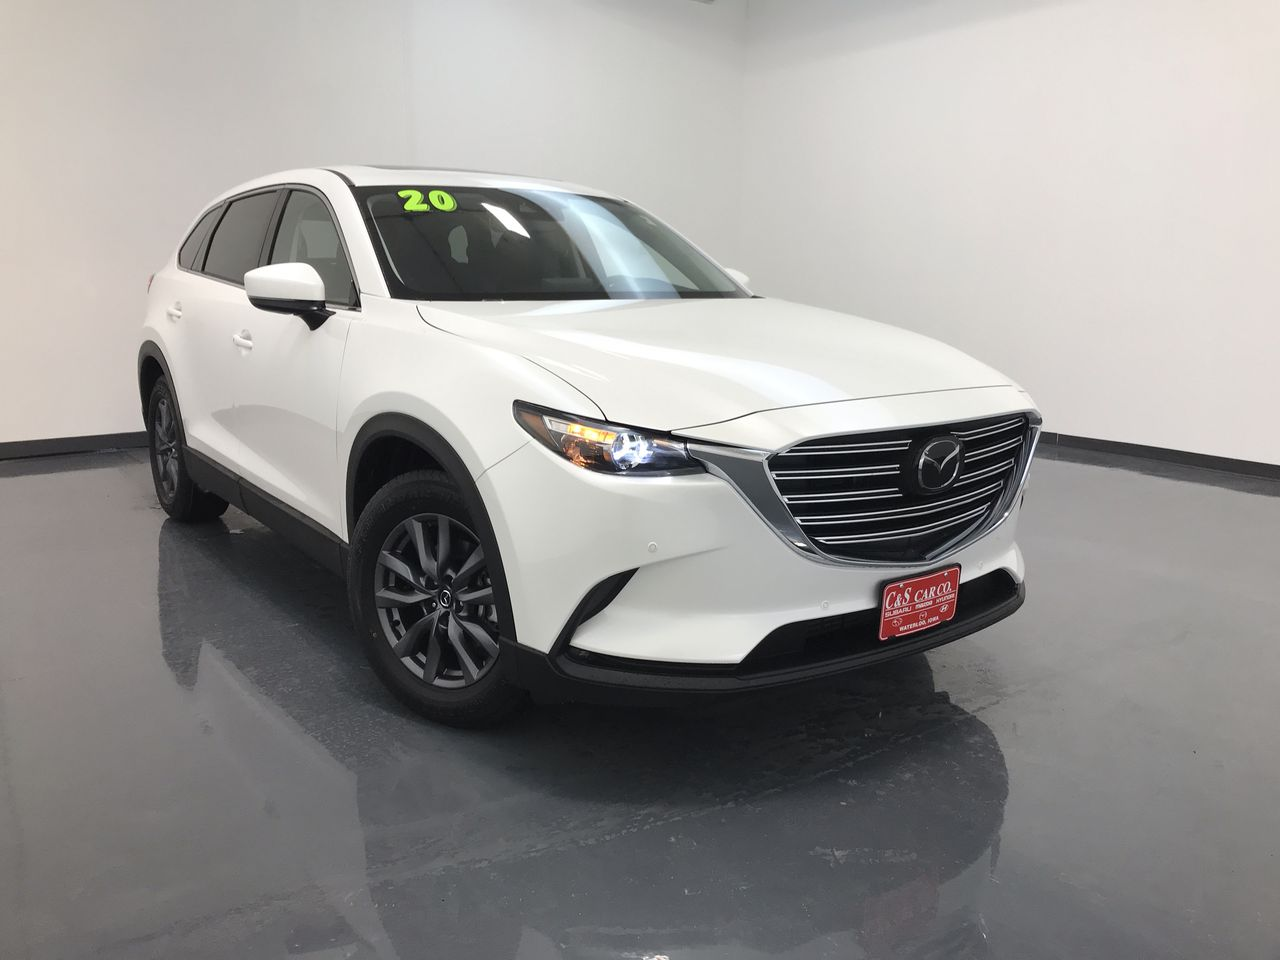 2020 Mazda CX-9 Touring AWD  - MA3351  - C & S Car Company